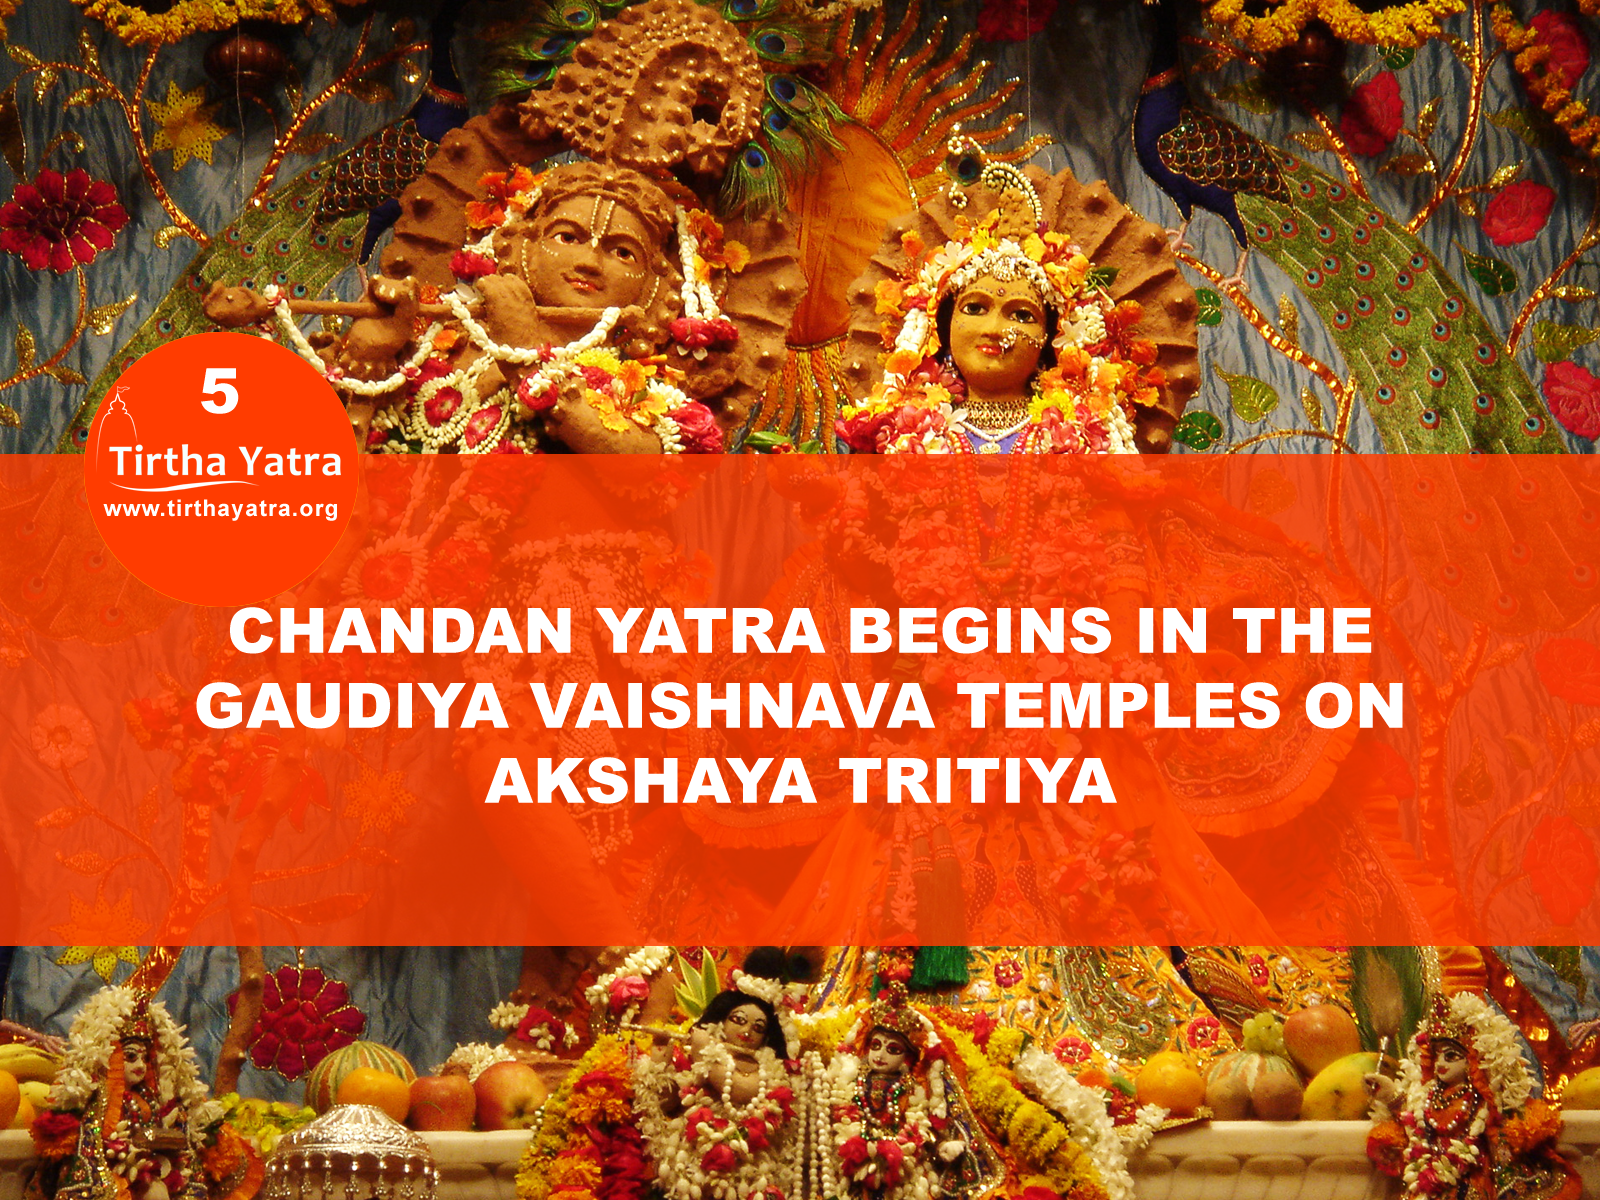 Chandan Yatra on Akshaya Tritiya